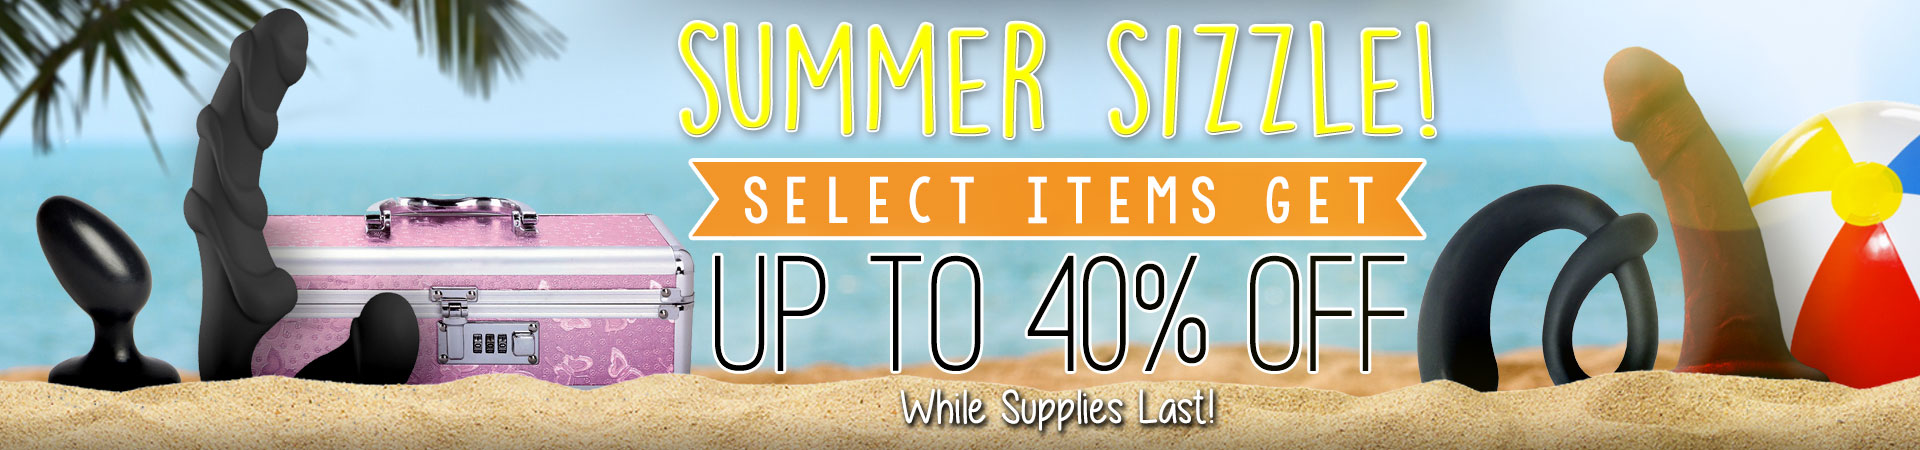 Shop Our Summer Sizzle Clearance. Up To 40% Off - These Deals Won't Last!